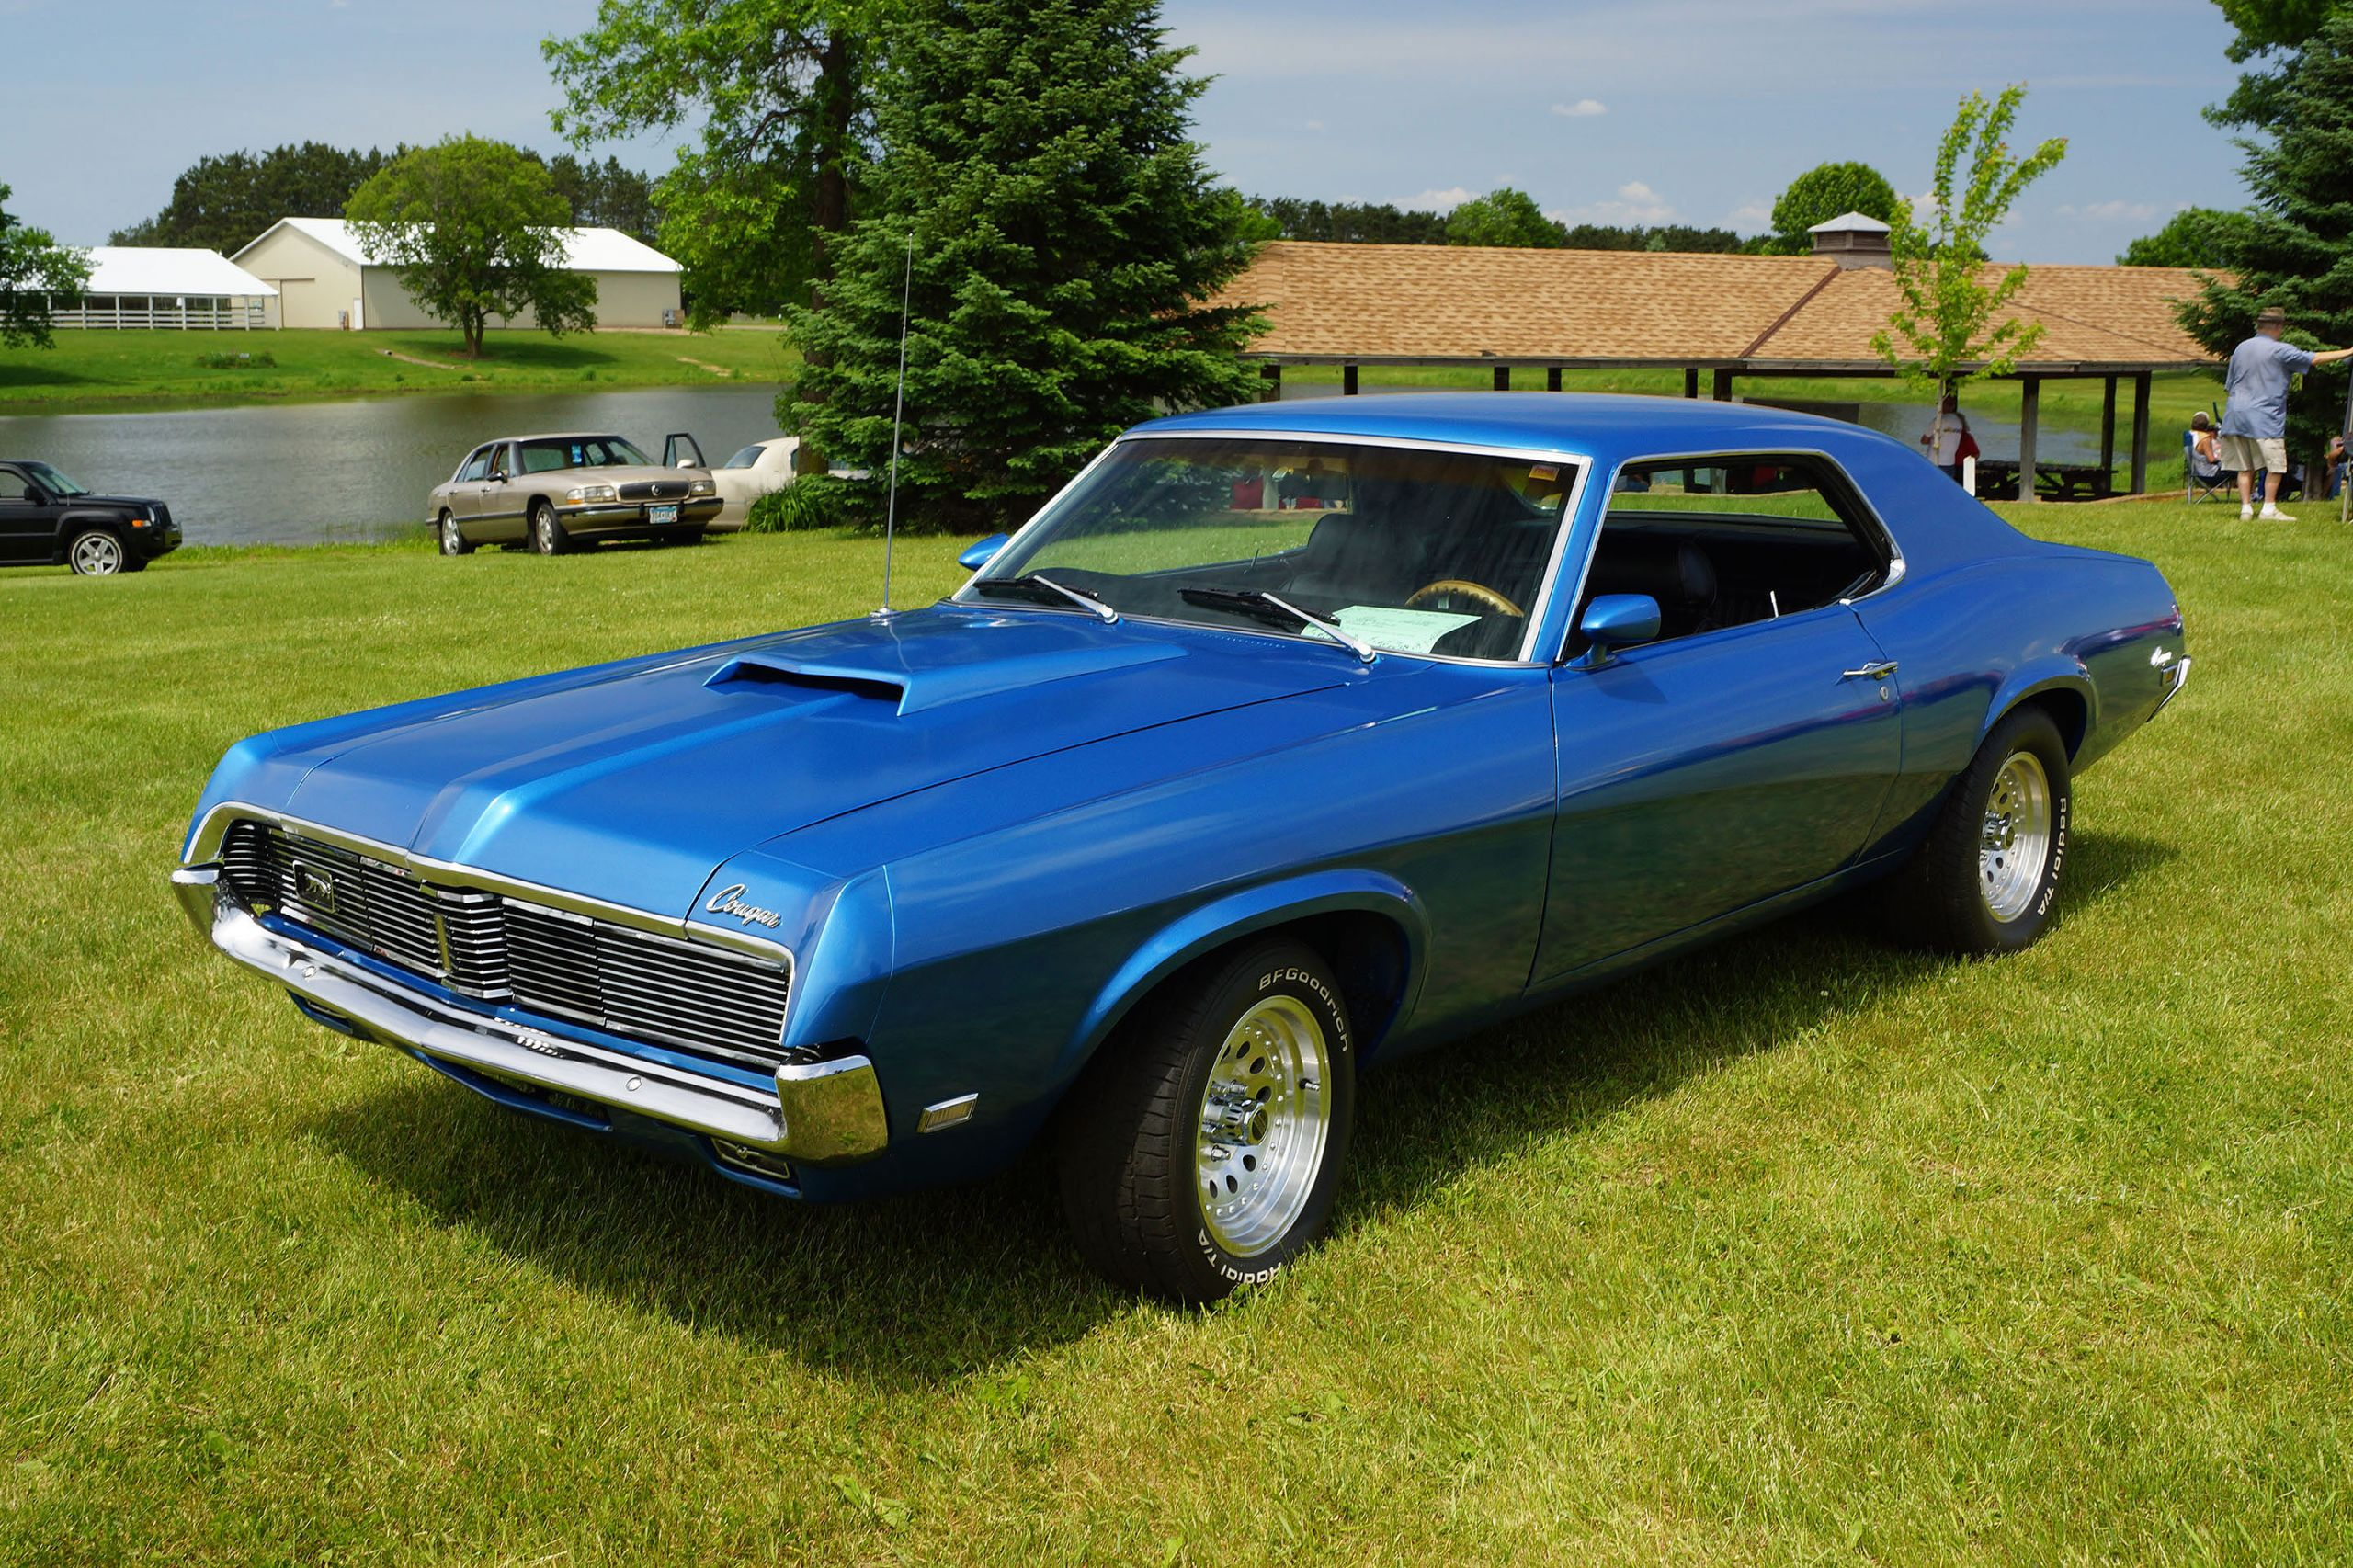 Mercury Cougar 1967 1970 Model Overview Muscle Gta